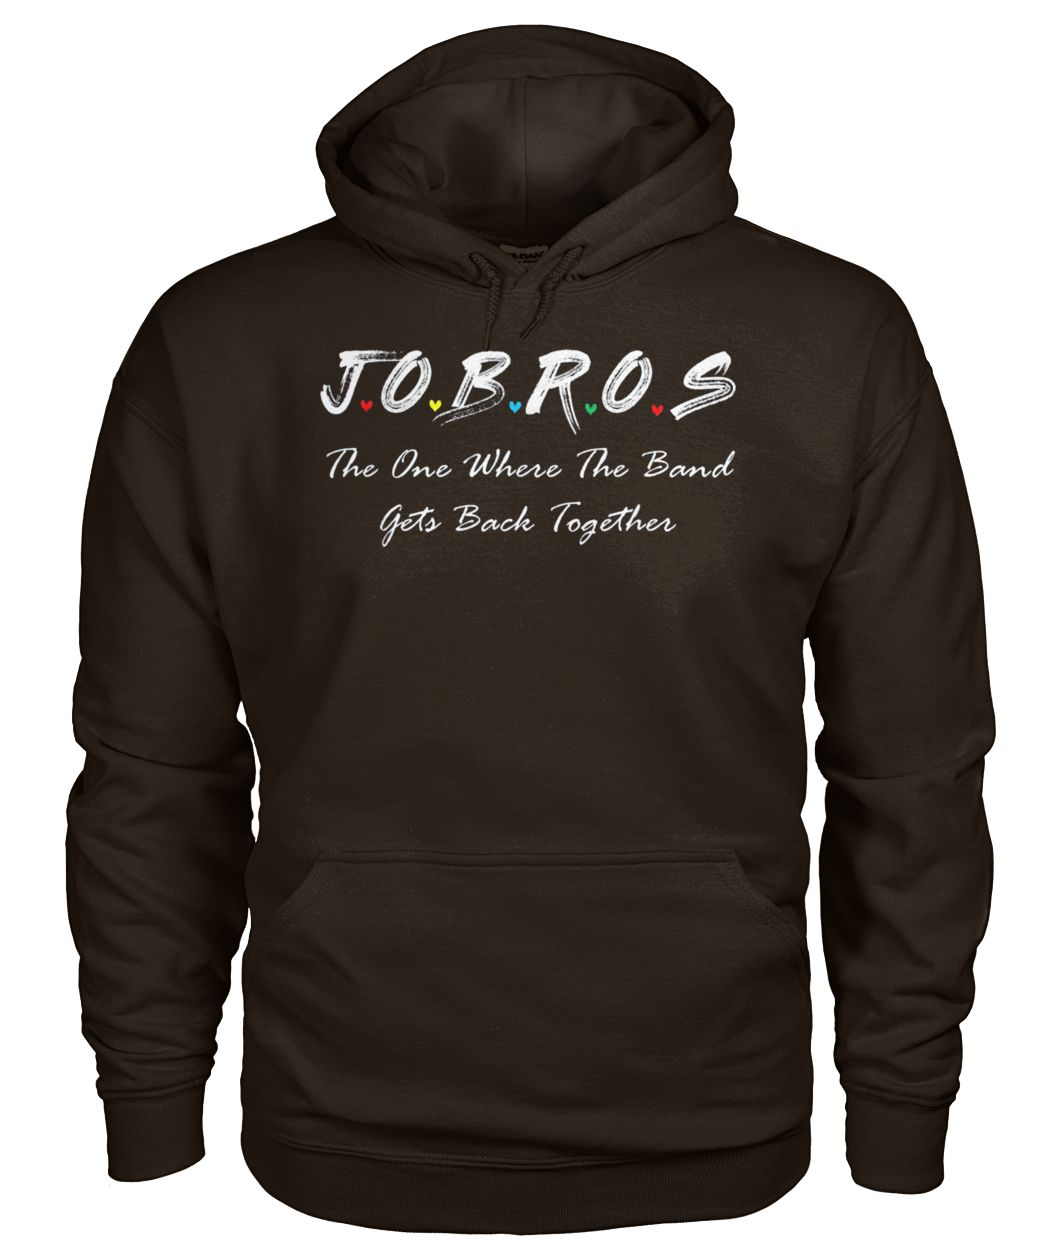 Jobros the one where the band get back together friends tv show gildan hoodie